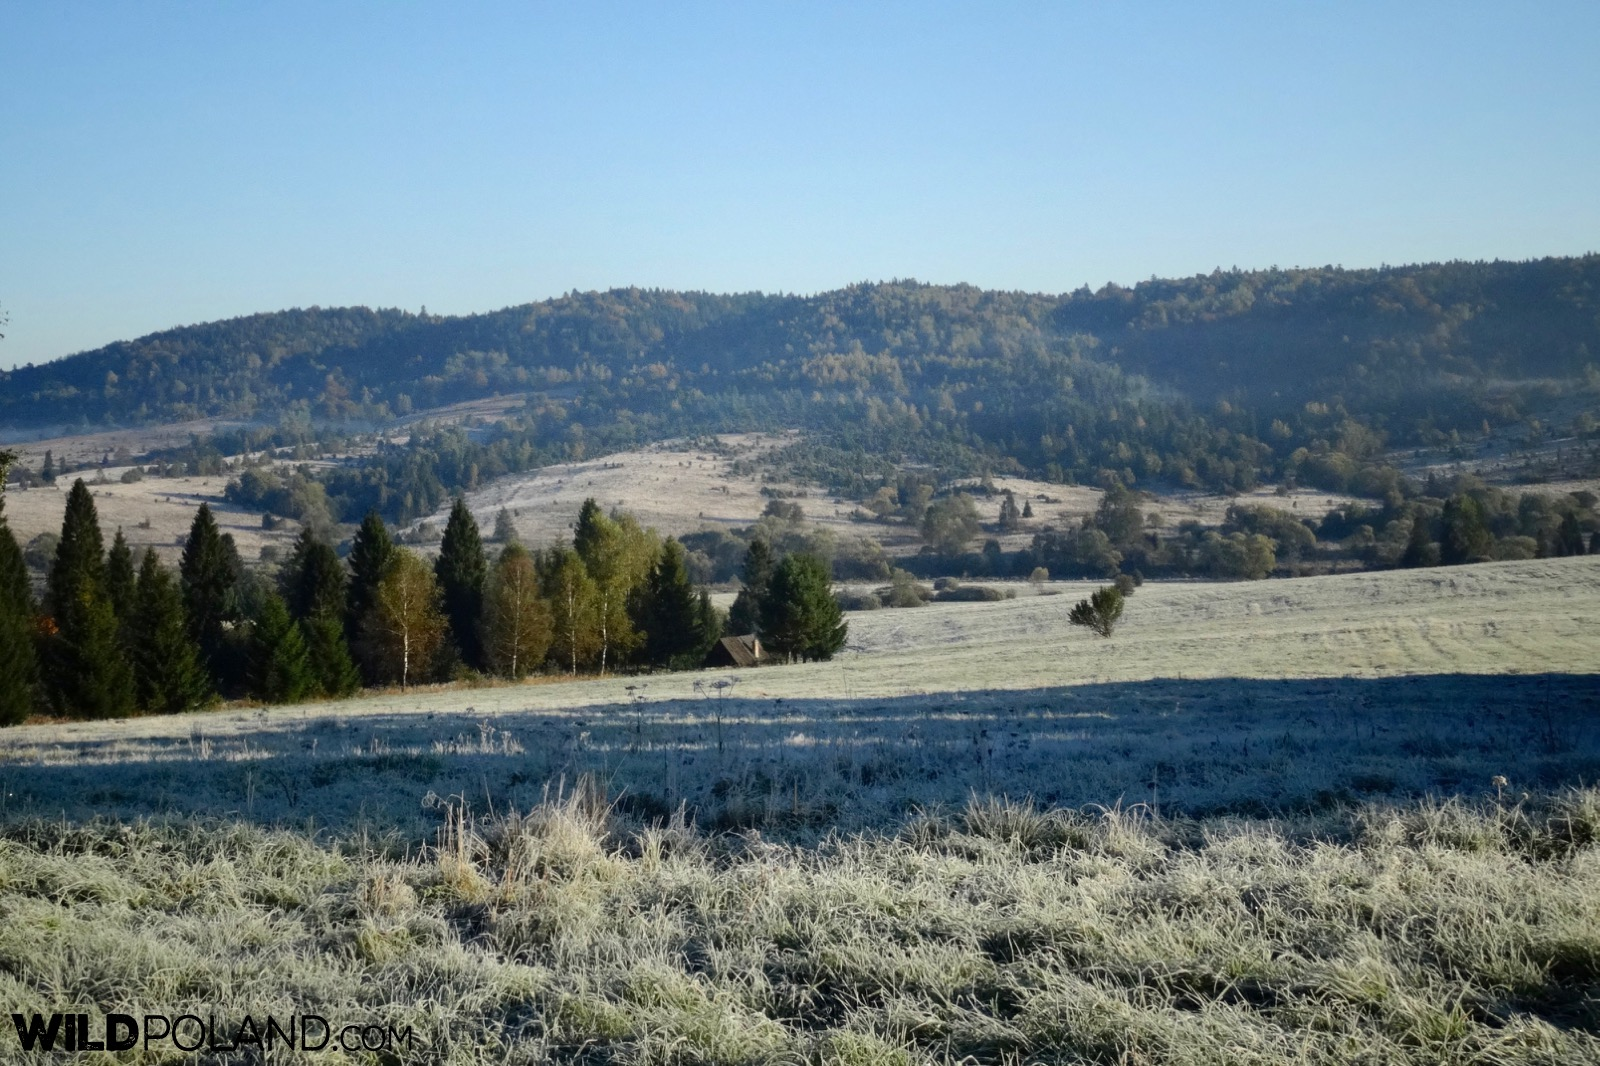 Frosty morning in Bieszczady Mountains, our guided Eastern Carpathians tour in September, photo by Piotr Dębowski